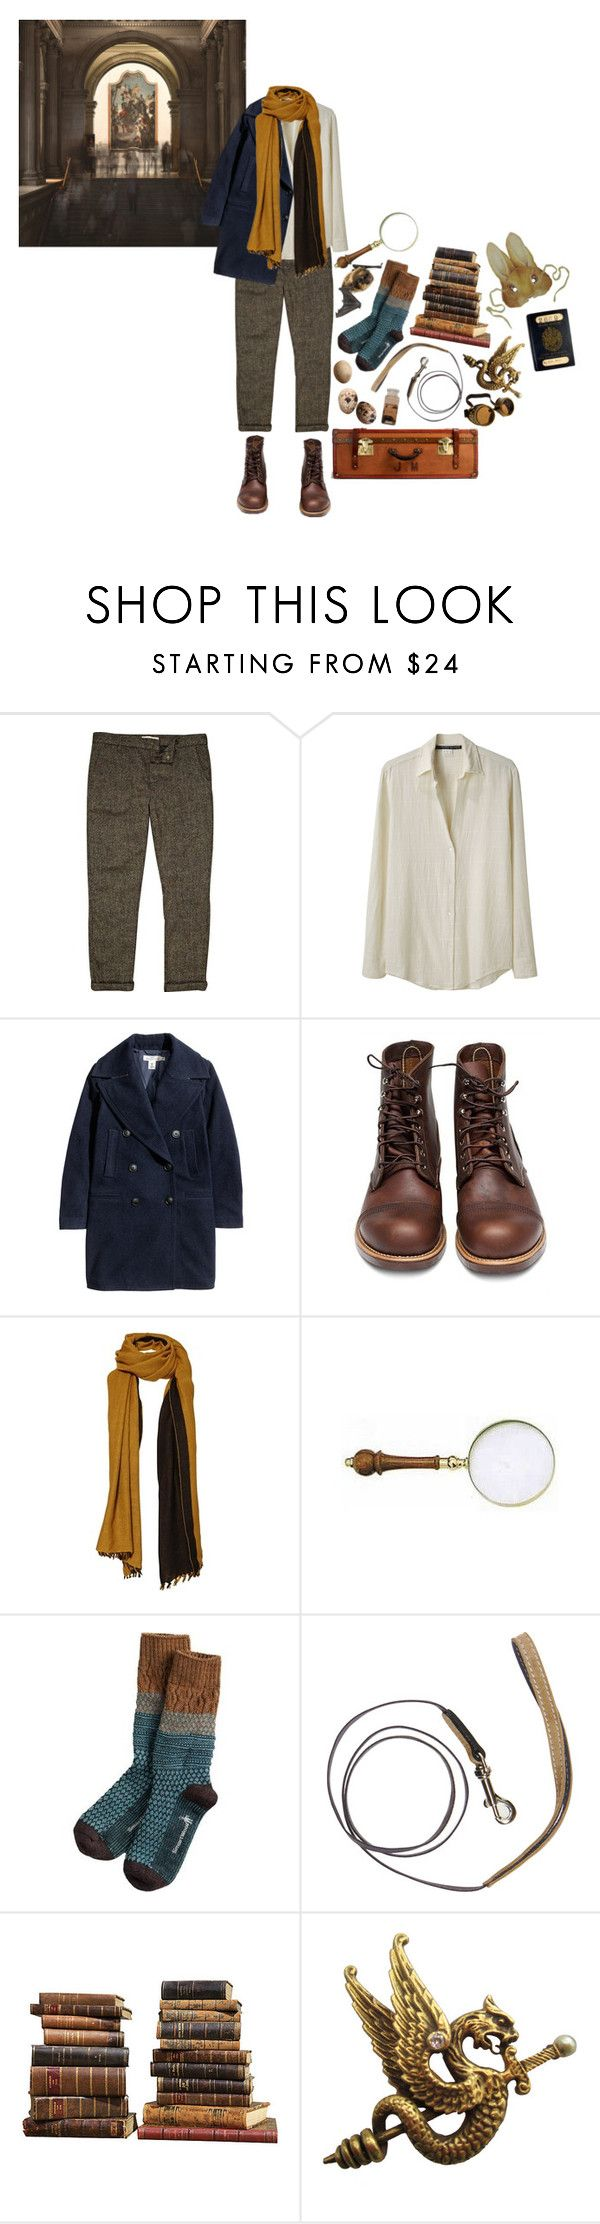 """newt scamander"" by macamacarron ❤ liked on Polyvore featuring River Island, Les Prairies de Paris, H&M, Red Wing, Comptoir Des Cotonniers, Mungo & Maud, Sarreid, S.W.O.R.D., men's fashion and menswear"